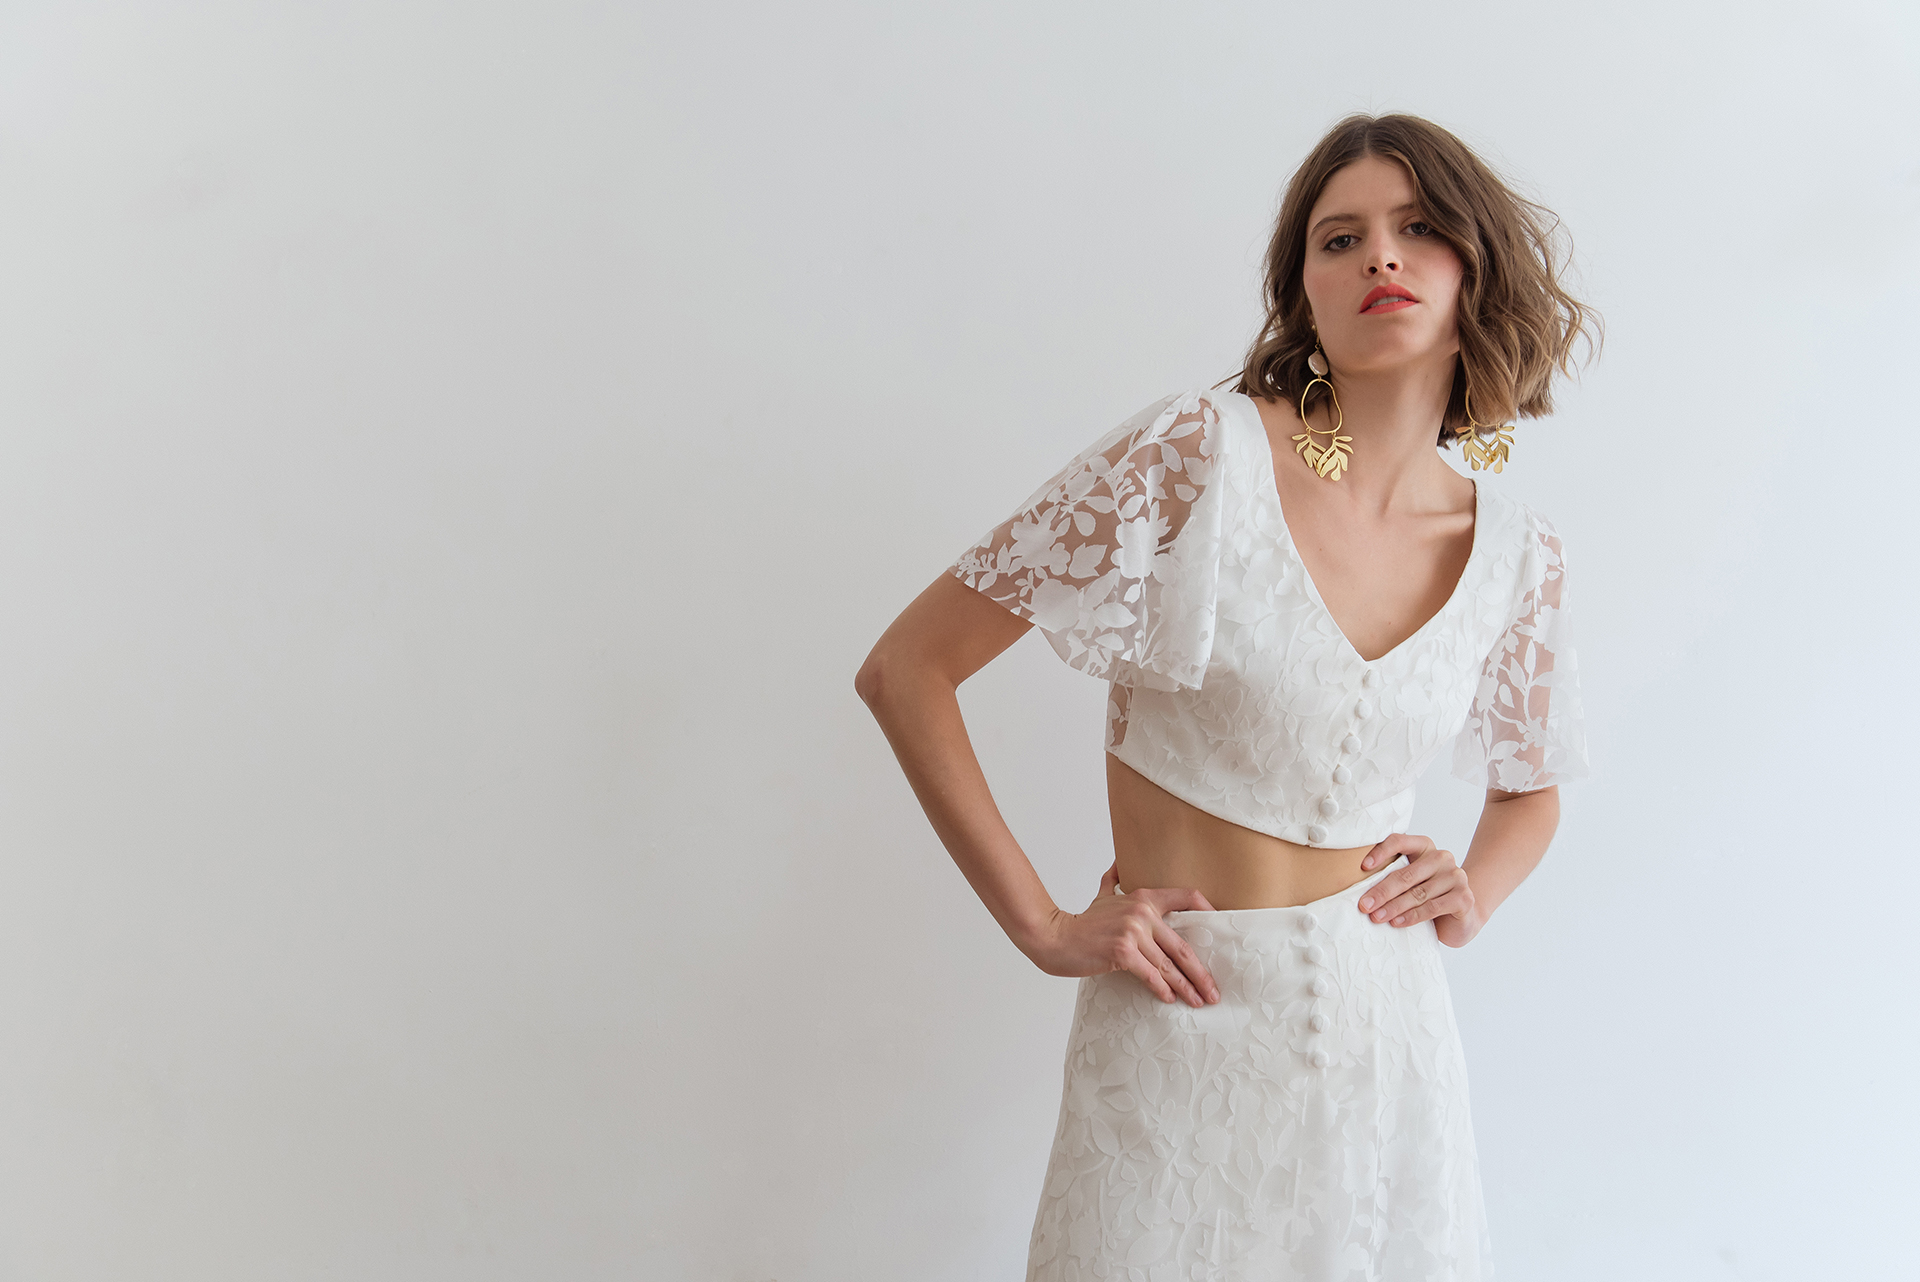 aurelia hoang, robe de mariée, robe mariée lyon, magasin robe de mariée lyon, creatrice robe mariee, boutique robe de mariée lyon, robe de mariée créateur, boutique mariage lyon, créateur robe de mariée, robe de mariée lyon, créatrice robes de mariée lyon, boutique robe de mariée, robe mariage lyon, robe mariée sur mesure lyon, robe de mariée nice, robe de mariée nantes, robe de mariée rhone, robe de mariée rhone alpes, robe de mariée courte lyon, création robe de mariée lyon, mariage civil lyon, mariage boheme lyon, mariage champetre lyon, wedding dress toronto, wedding dresses toronto, wedding gown toronto, wedding gown shops toronto, wedding dress stores toronto, wedding dress designer, wedding dress designer toronto, wedding dress designers canada, canadian wedding dress designers, canada wedding dress designers, canada wedding dresses, toronto bridal stores, toronto bridal, toronto bridal style, toronto bridal designers, toronto bridal designer, toronto wedding gowns, bridal designer toronto, designer wedding dresses, designer of custom wedding dresses, custom wedding gowns toronto, bridal couture store, toronto bridal boutique, wedding dresses boutique, toronto bridal store, designer bridal boutique, bridal store in toronto, custom bridal dresses toronto, custom bridal gown design, custom designed wedding gowns, custom made wedding gown toronto, bridal shop, toronto bridal shop, wedding dresses in toronto, modern bride, boho wedding dress toronto, ensemble milton malacca, top milton, jupe malacca, milton malacca wedding separate, milton wedding top, malacca wedding skirt, collection 2020